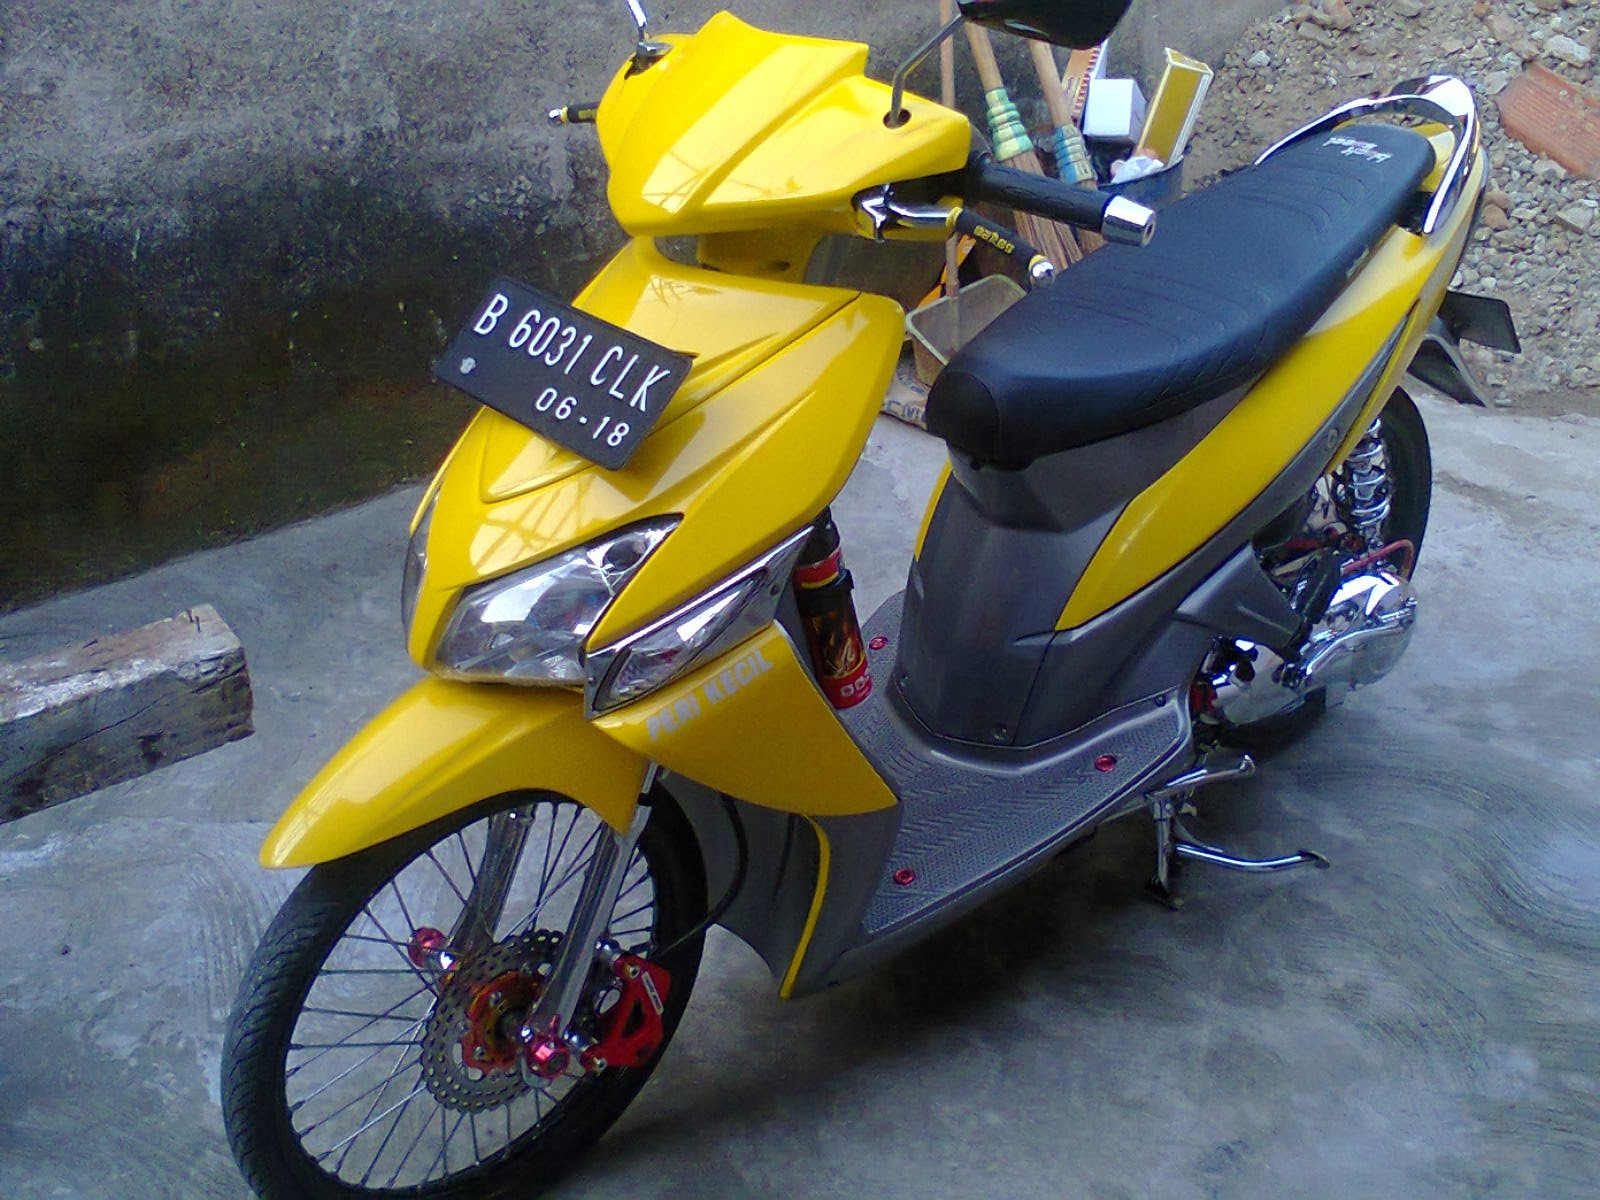 Modifikasi Vario Warna Kuning Lampak Modifikasi